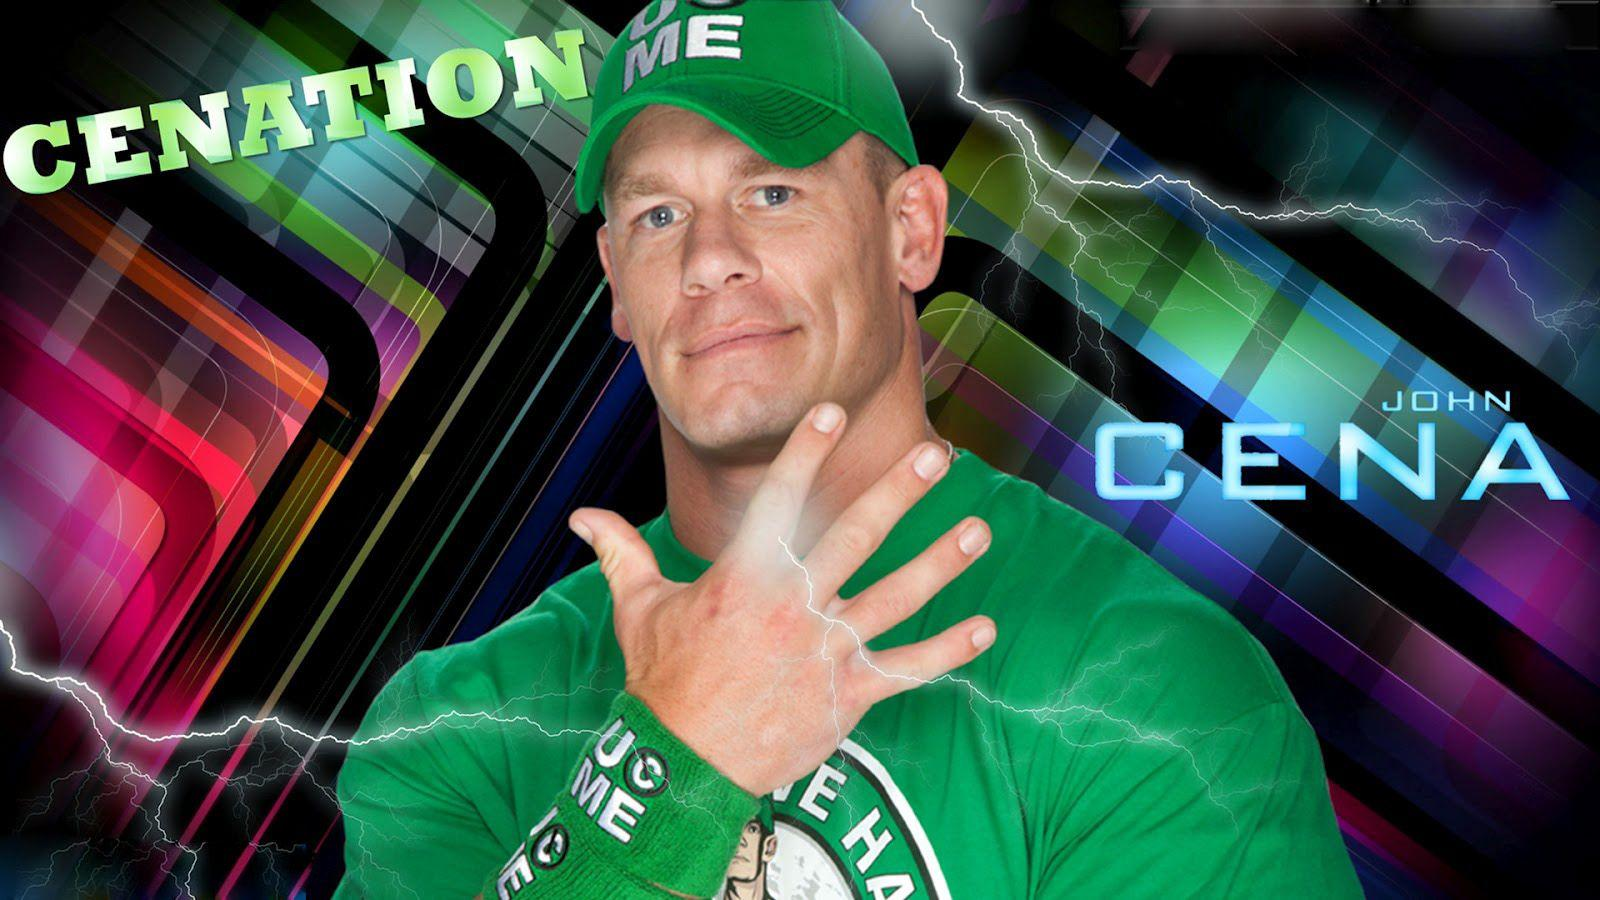 john cena never give up wallpapers green - wallpaper cave